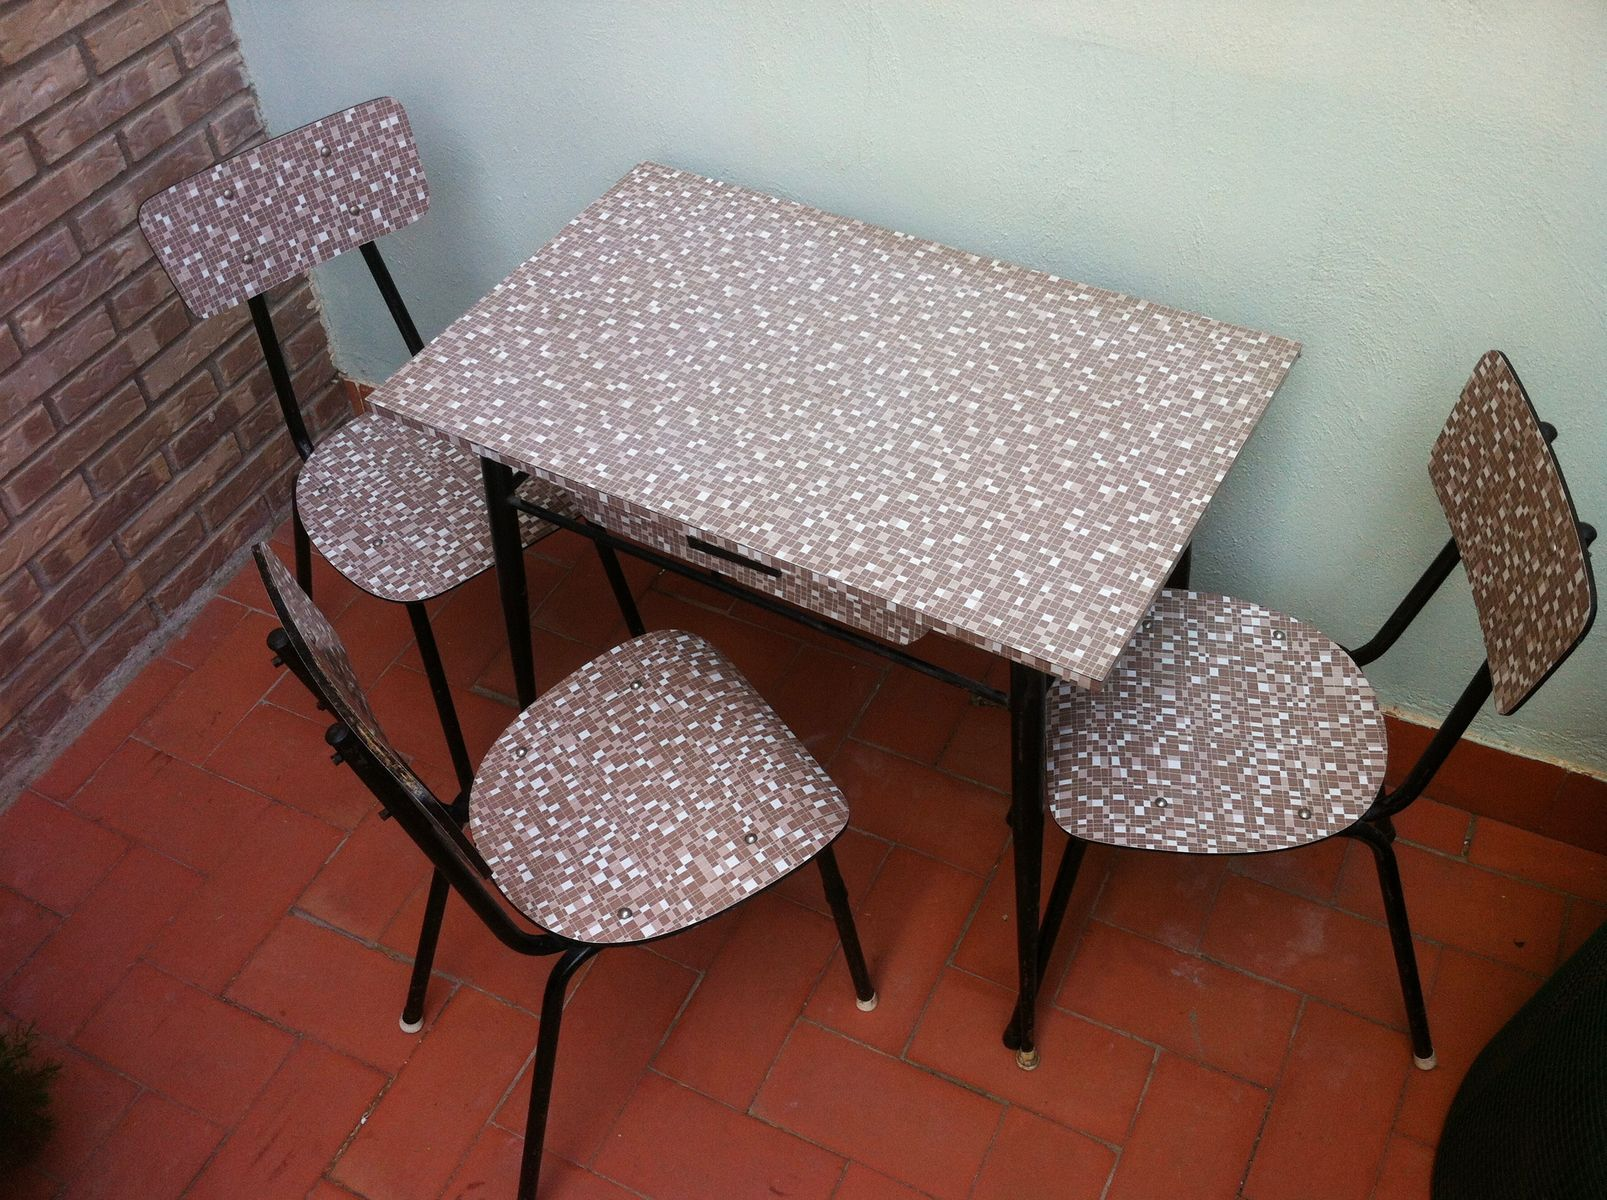 Photo besides Vintage 1950s Formica And Chrome Table moreover 321079900096 furthermore Spanish Formica Dining Set 1960s 1 additionally 1950s Chrome Kitchen Table Metal 1960 And Chairs With Additional 1950 Kitchen Table And Chairs With New Kitchen Window Curtains. on vintage formica table set